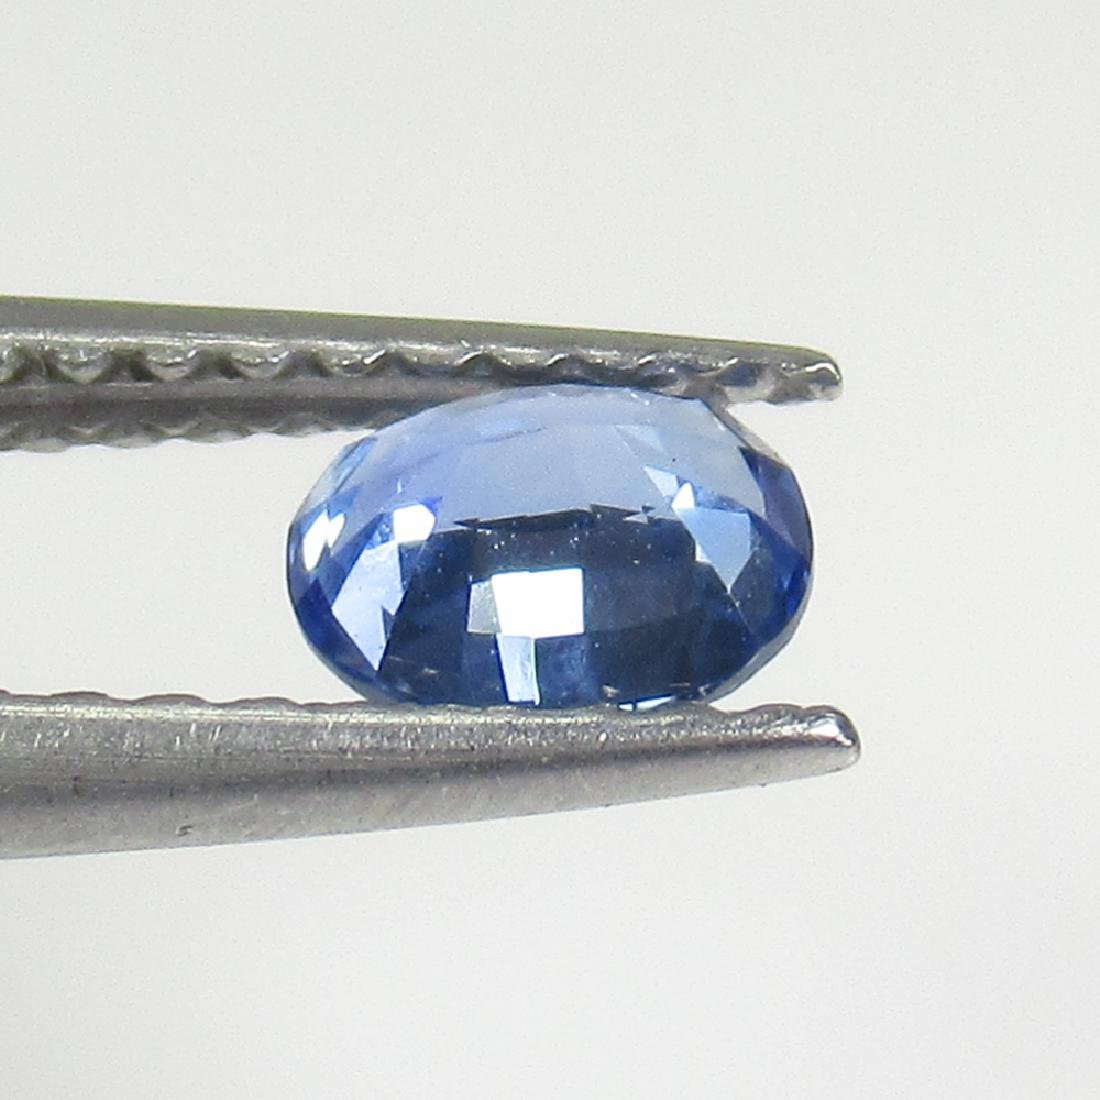 0.45 Ctw Natural Ceylon Blue Sapphire 5X4 mm Oval Cut - 2